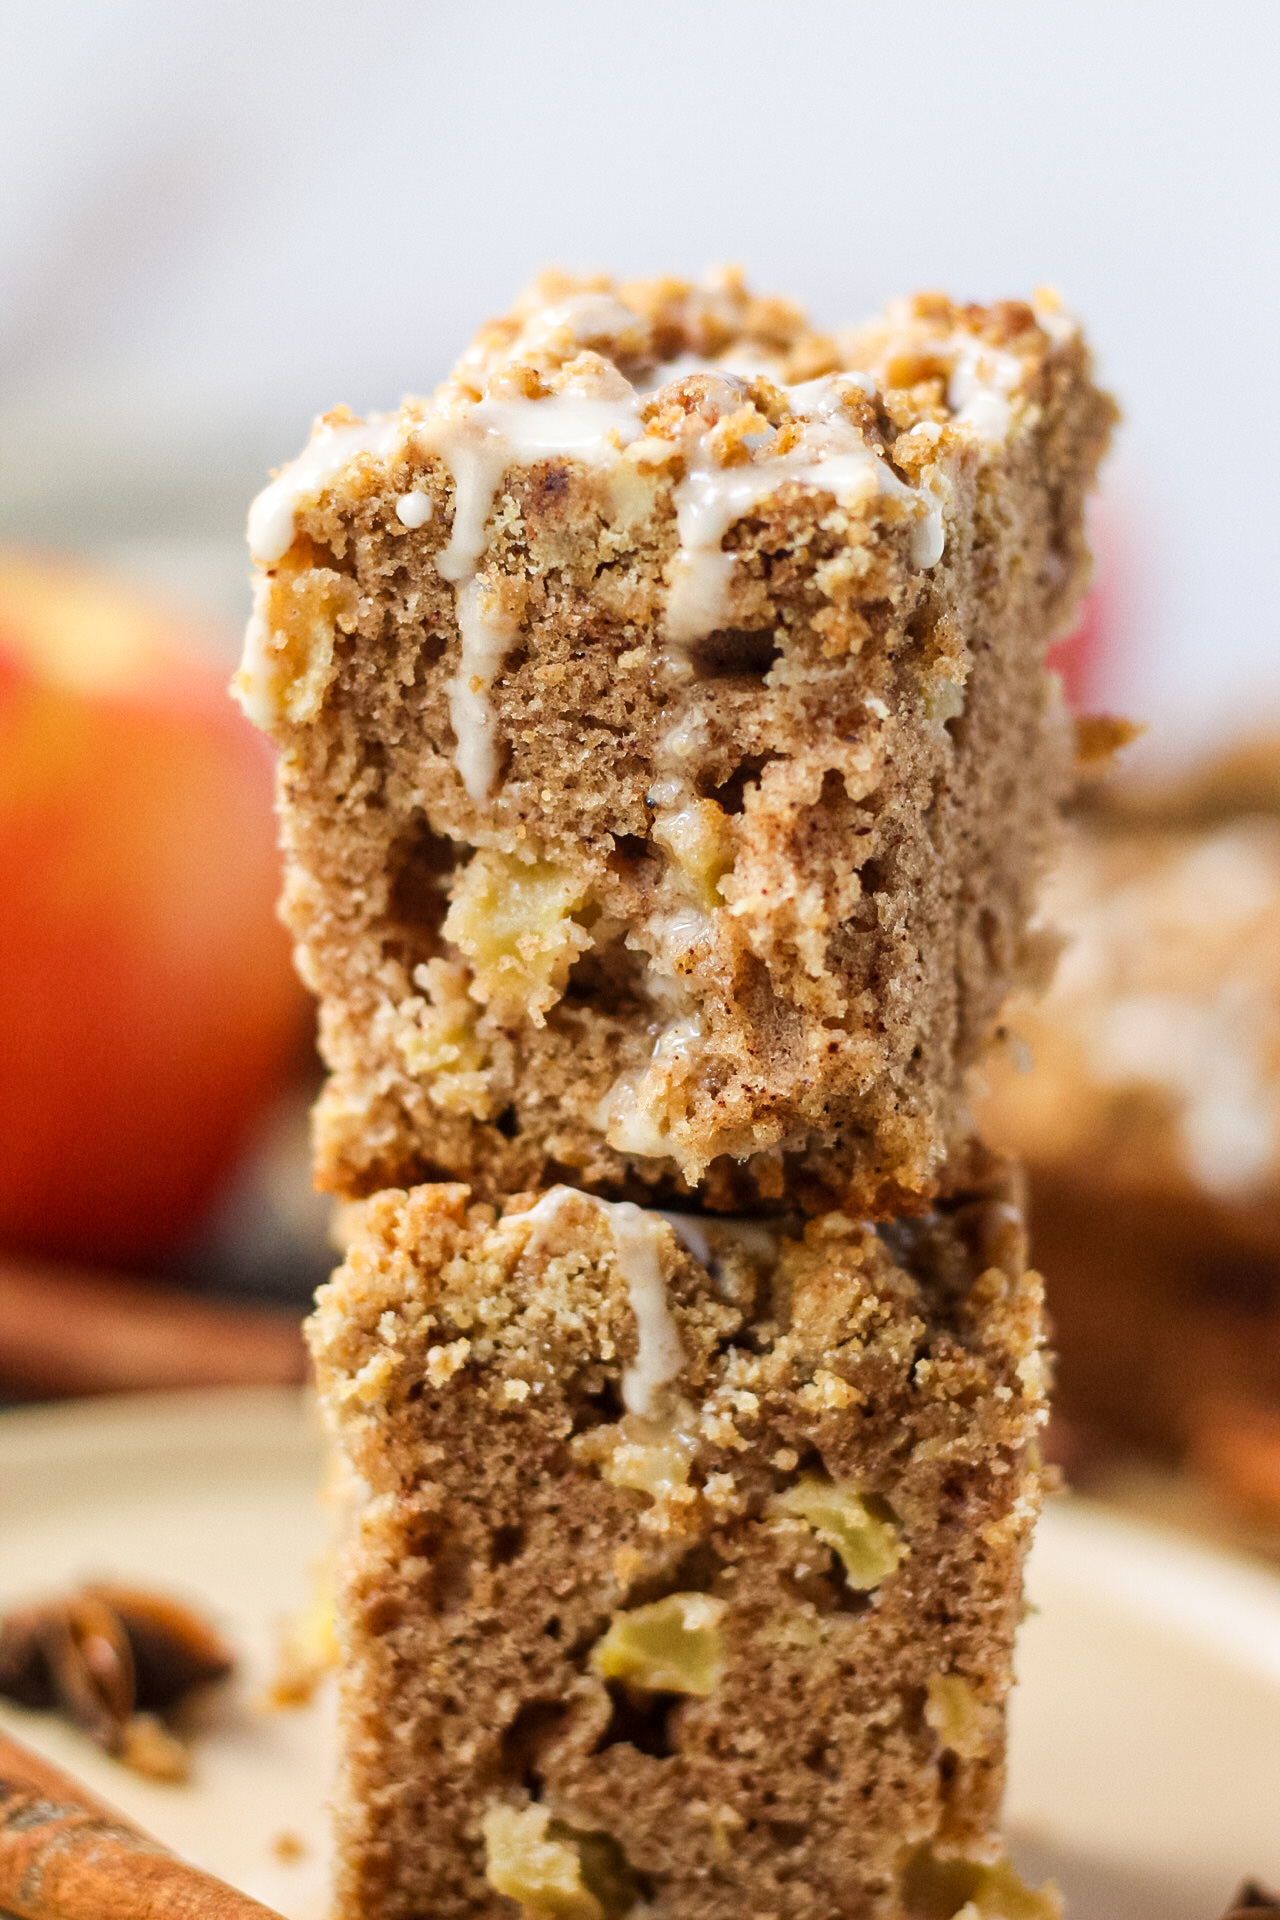 close up side shot of two slices of spiced apple crumb cake stacked on a brown plate with apples, cinnamon stick and star anise pods in the perimeter of shot.